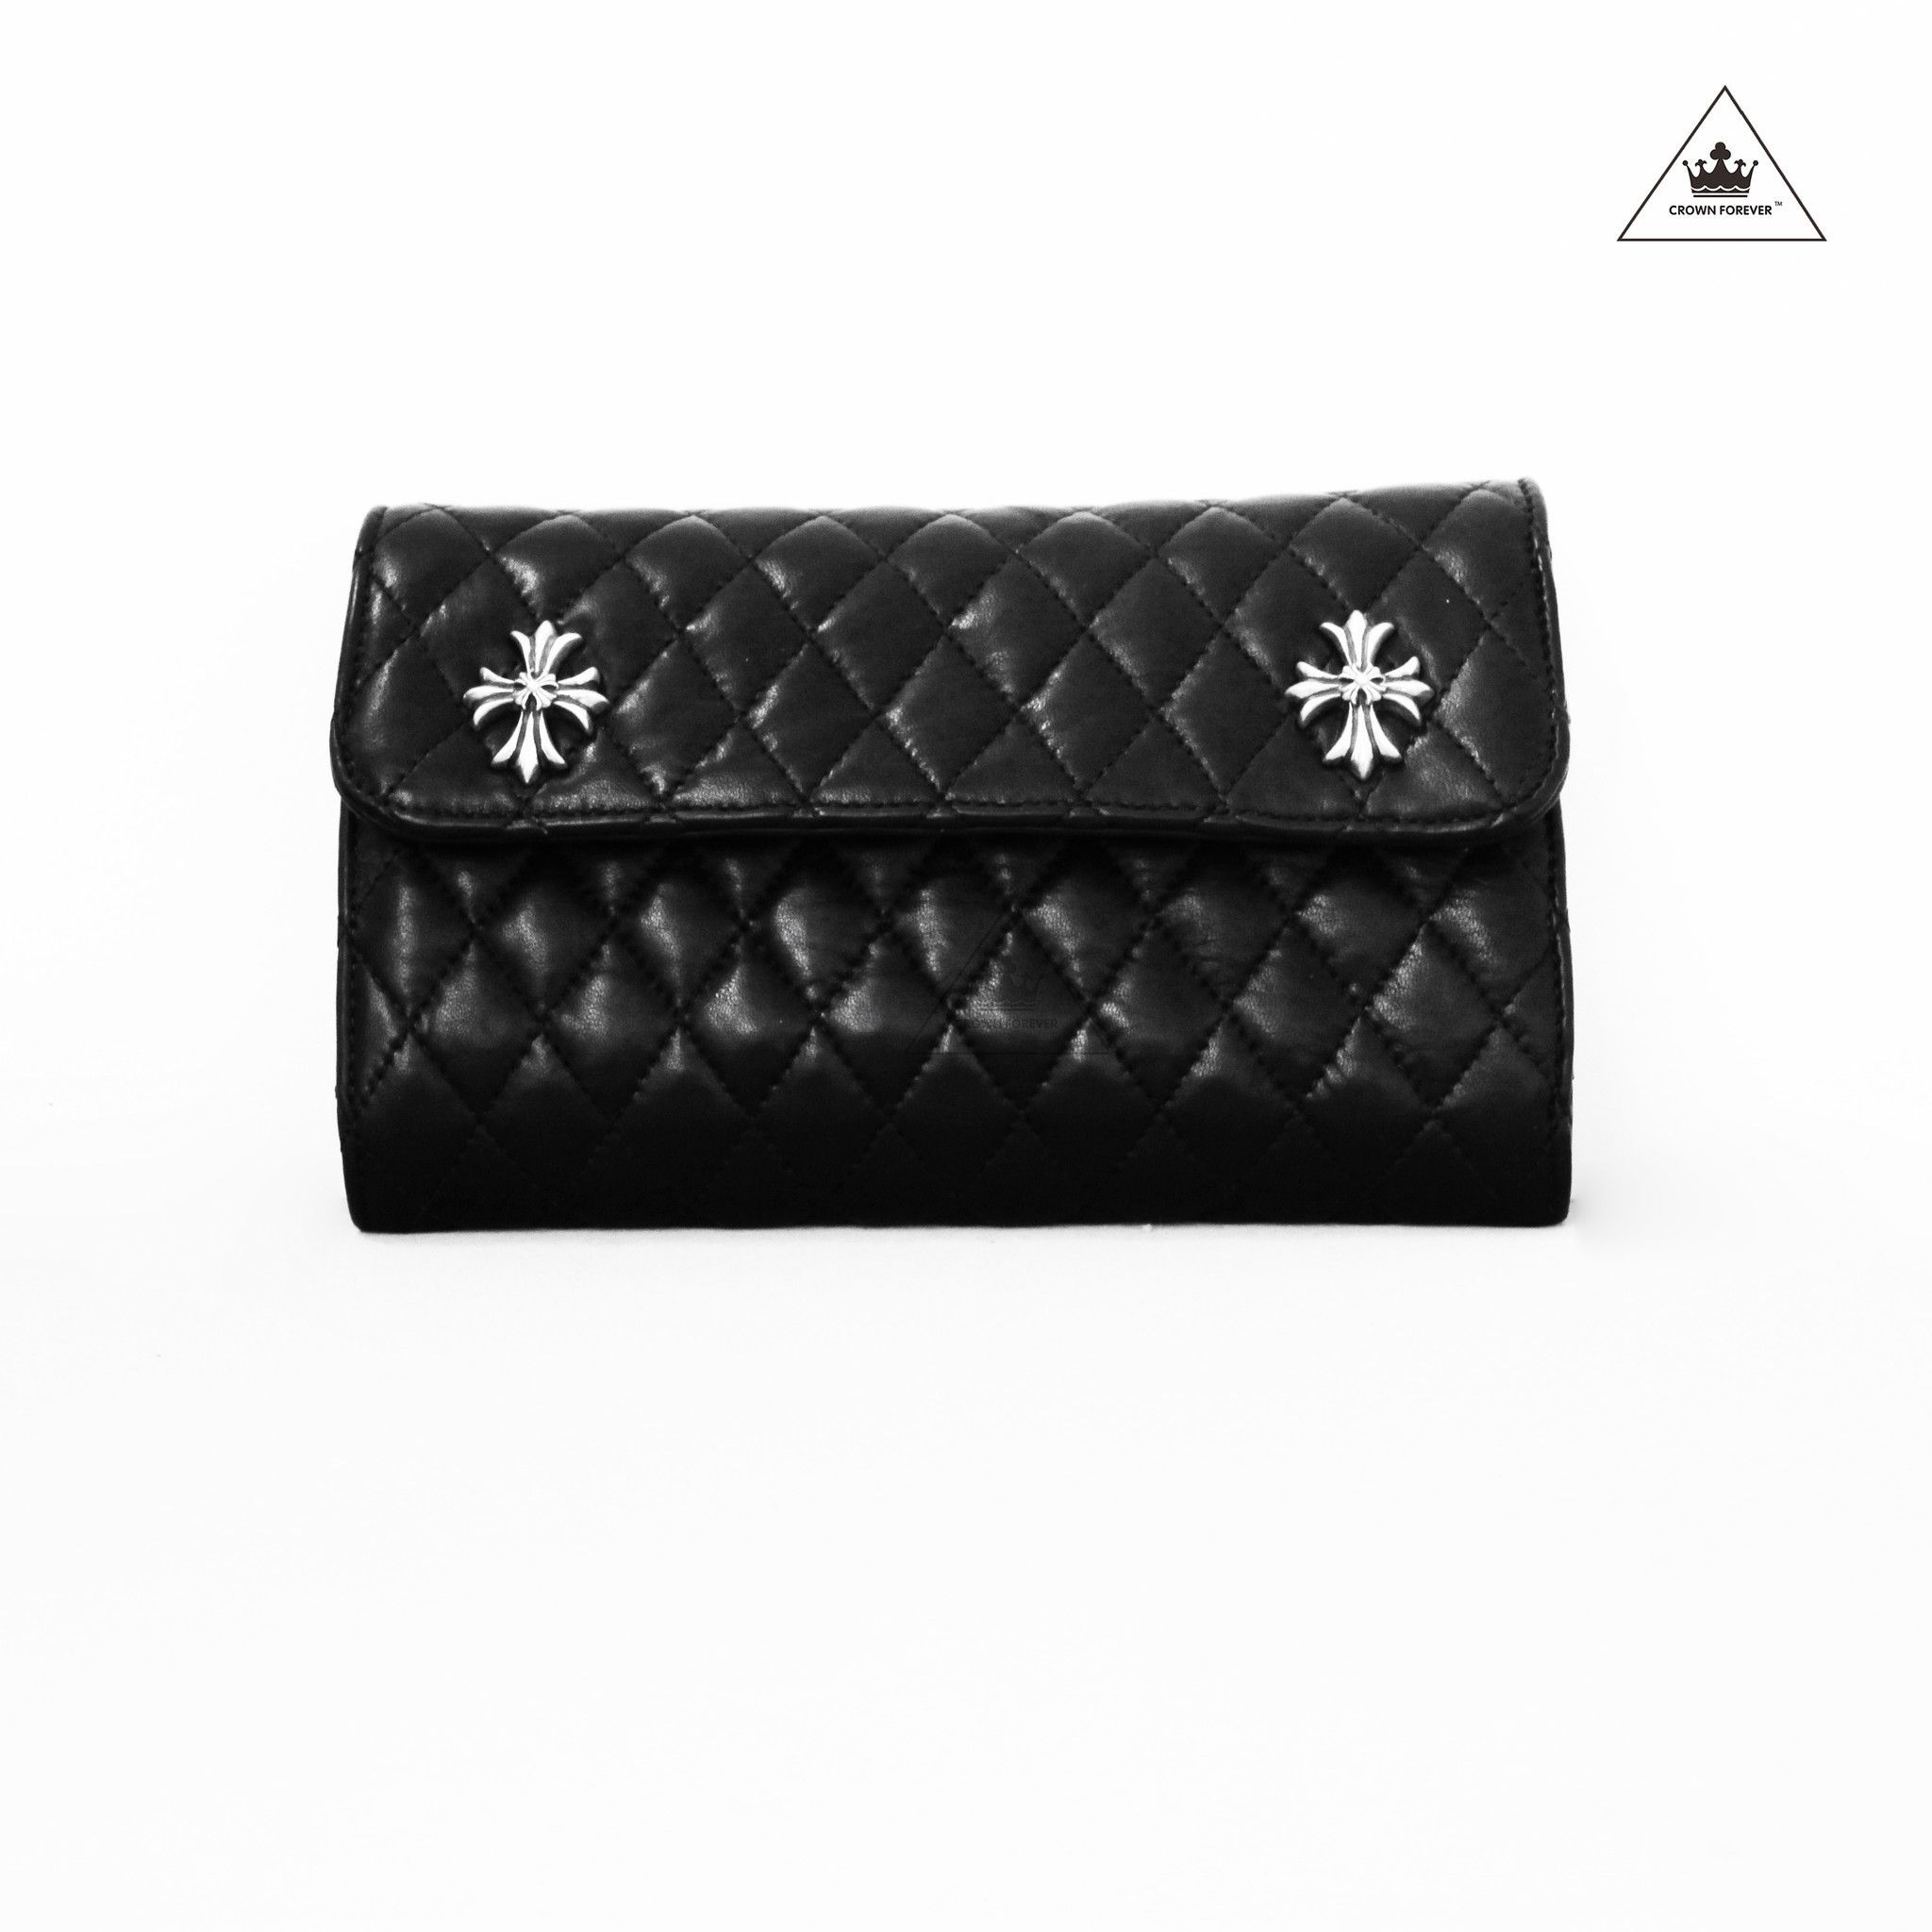 Chrome Hearts Bag Quilted Navy Sterling Silver Hardware Charming aIZPOI